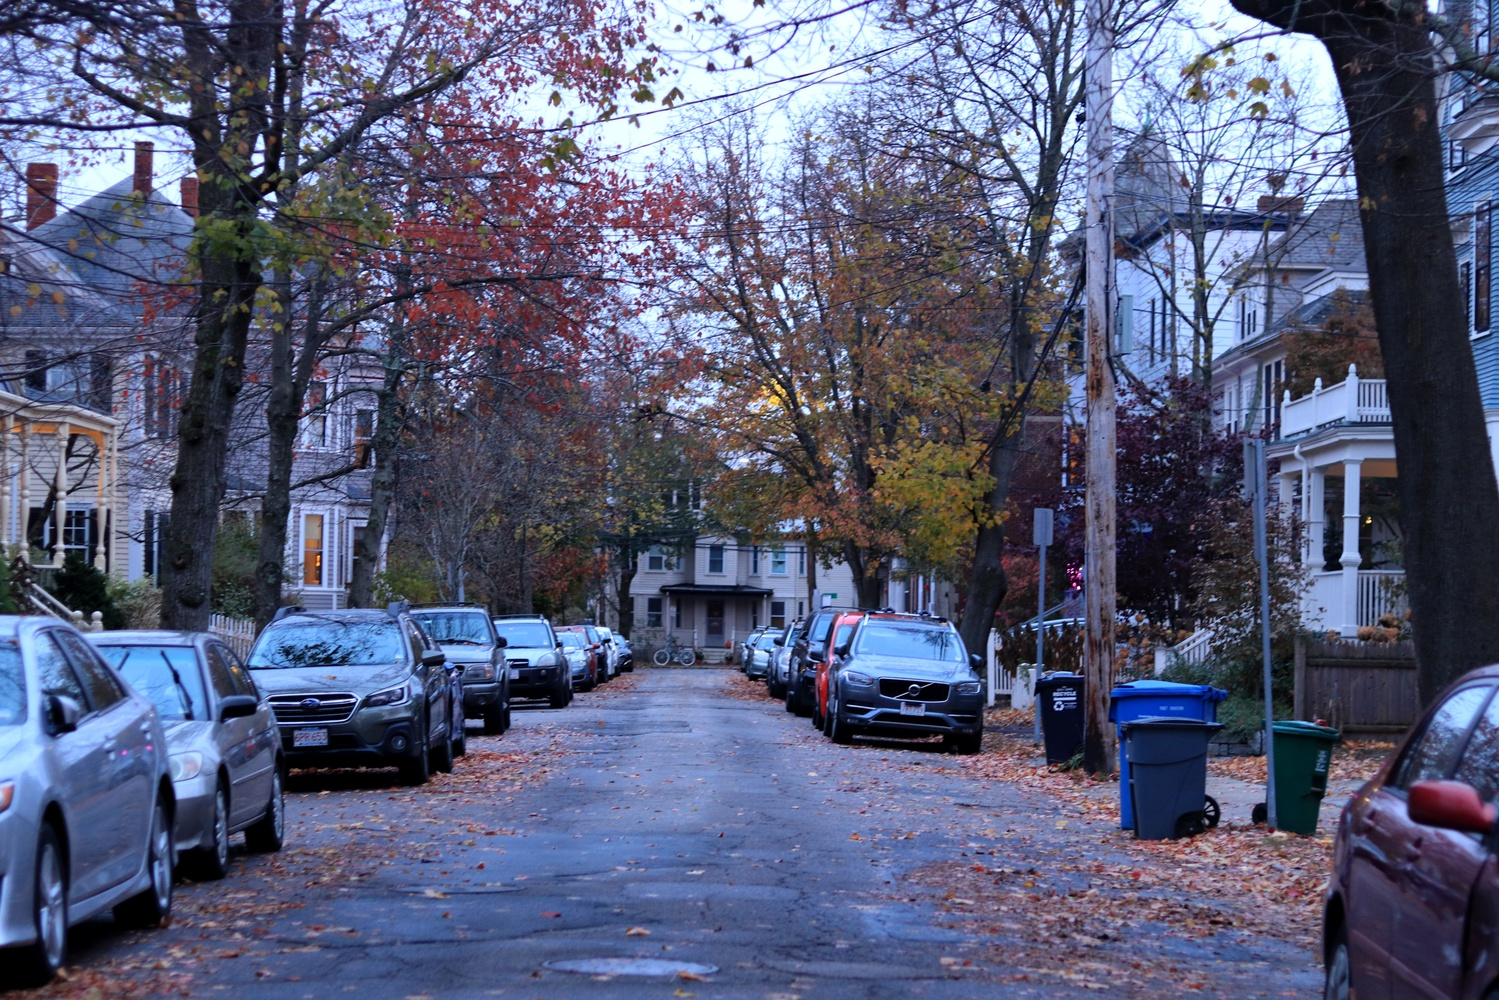 Several Cambridge politicians have proposed measures to increase the amount of affordable housing in the city.